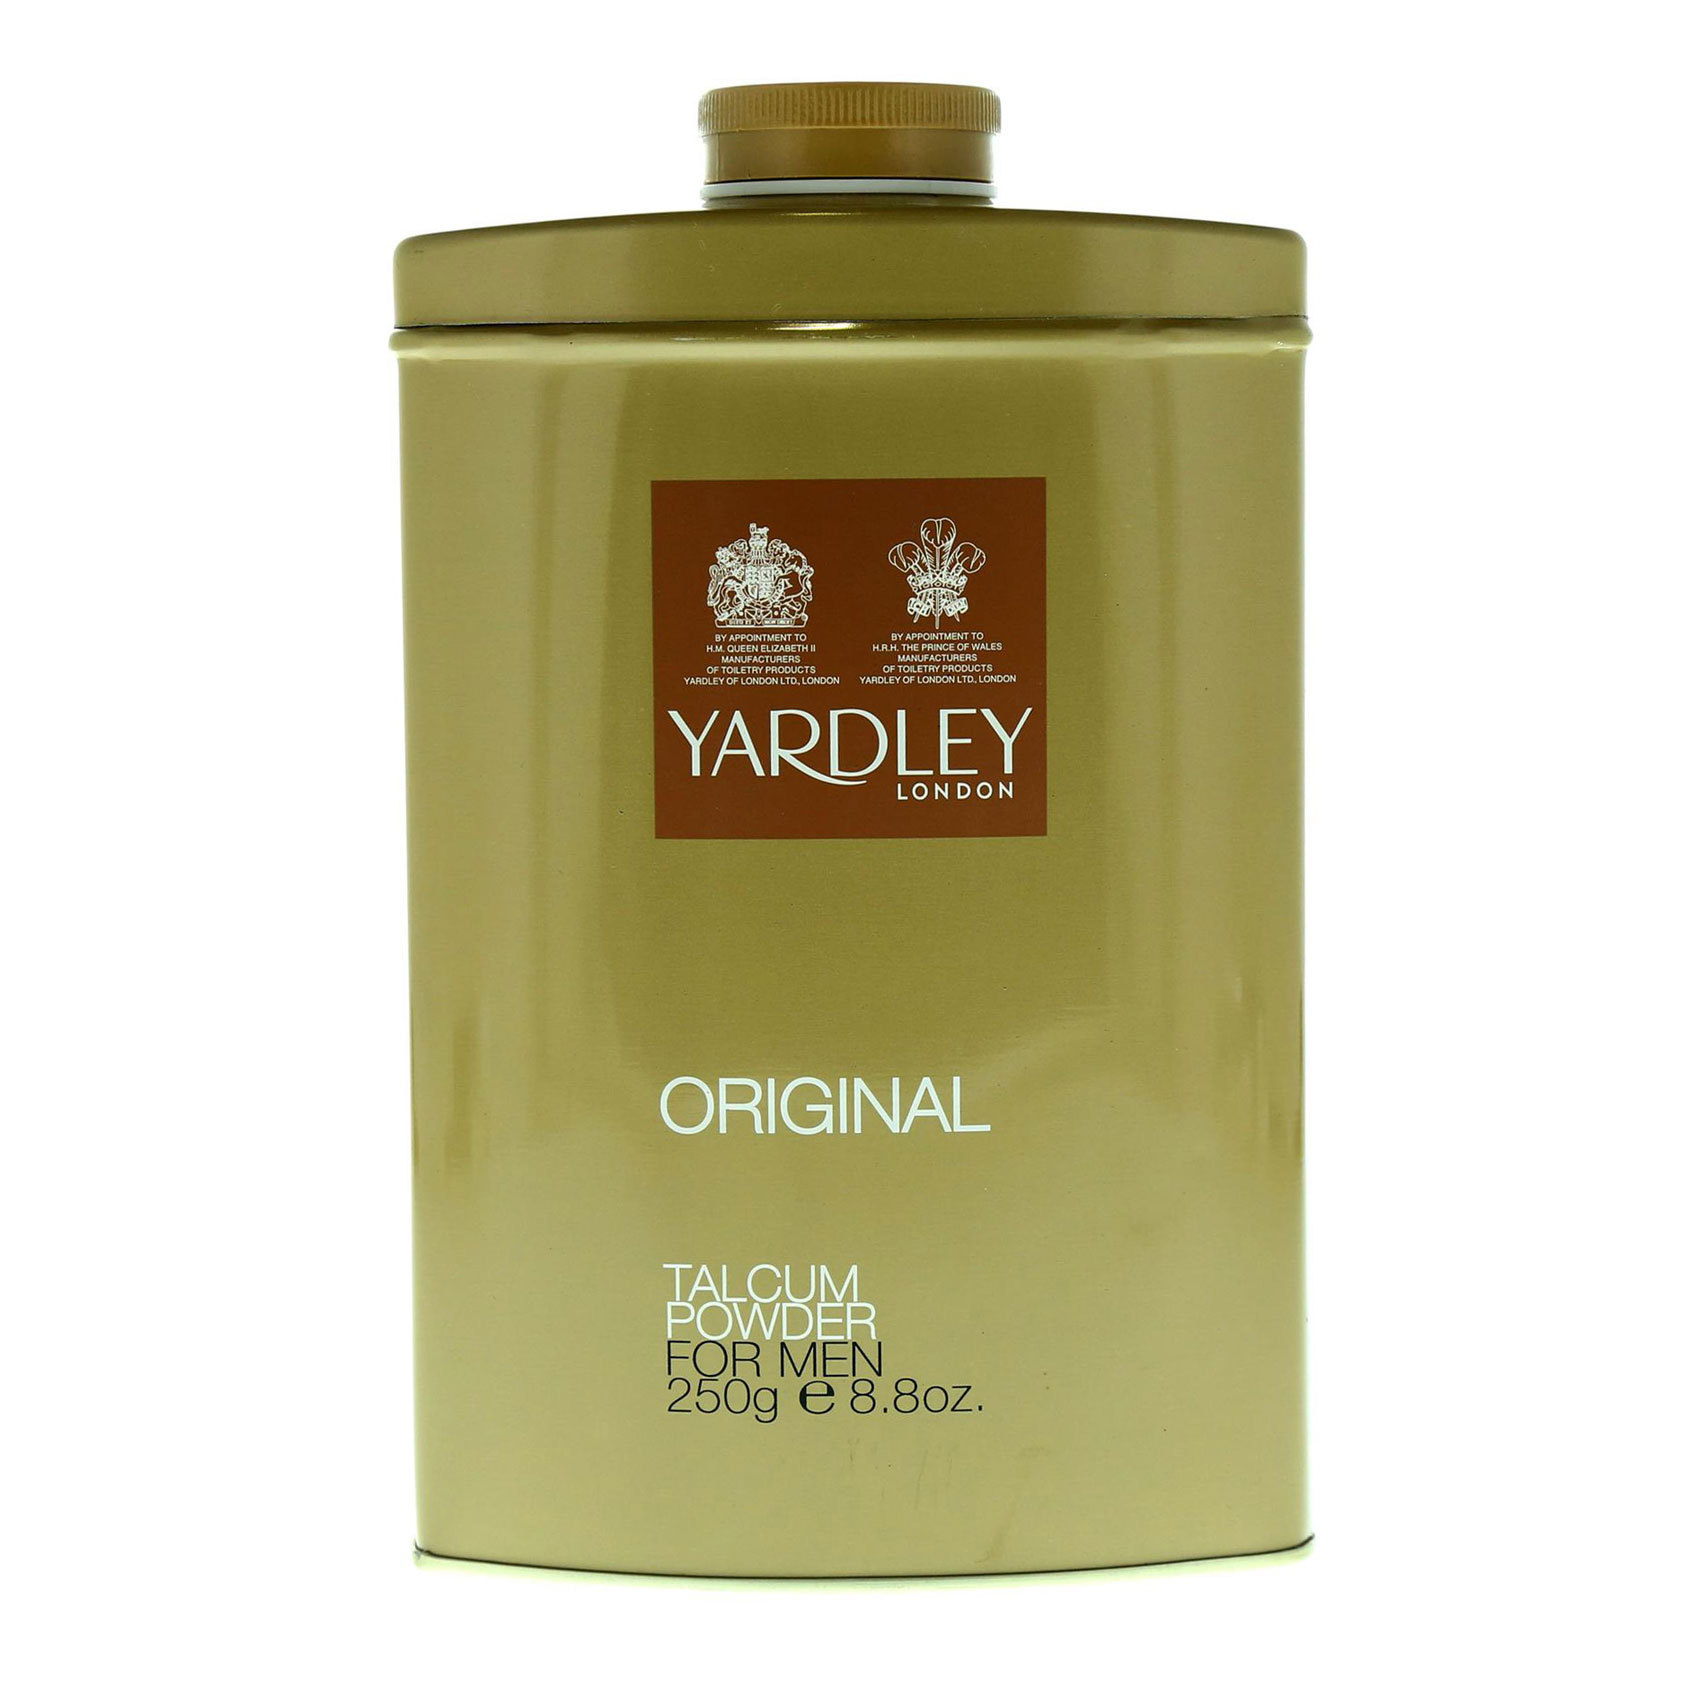 YARDLEY ORIGINAL TALC 250G